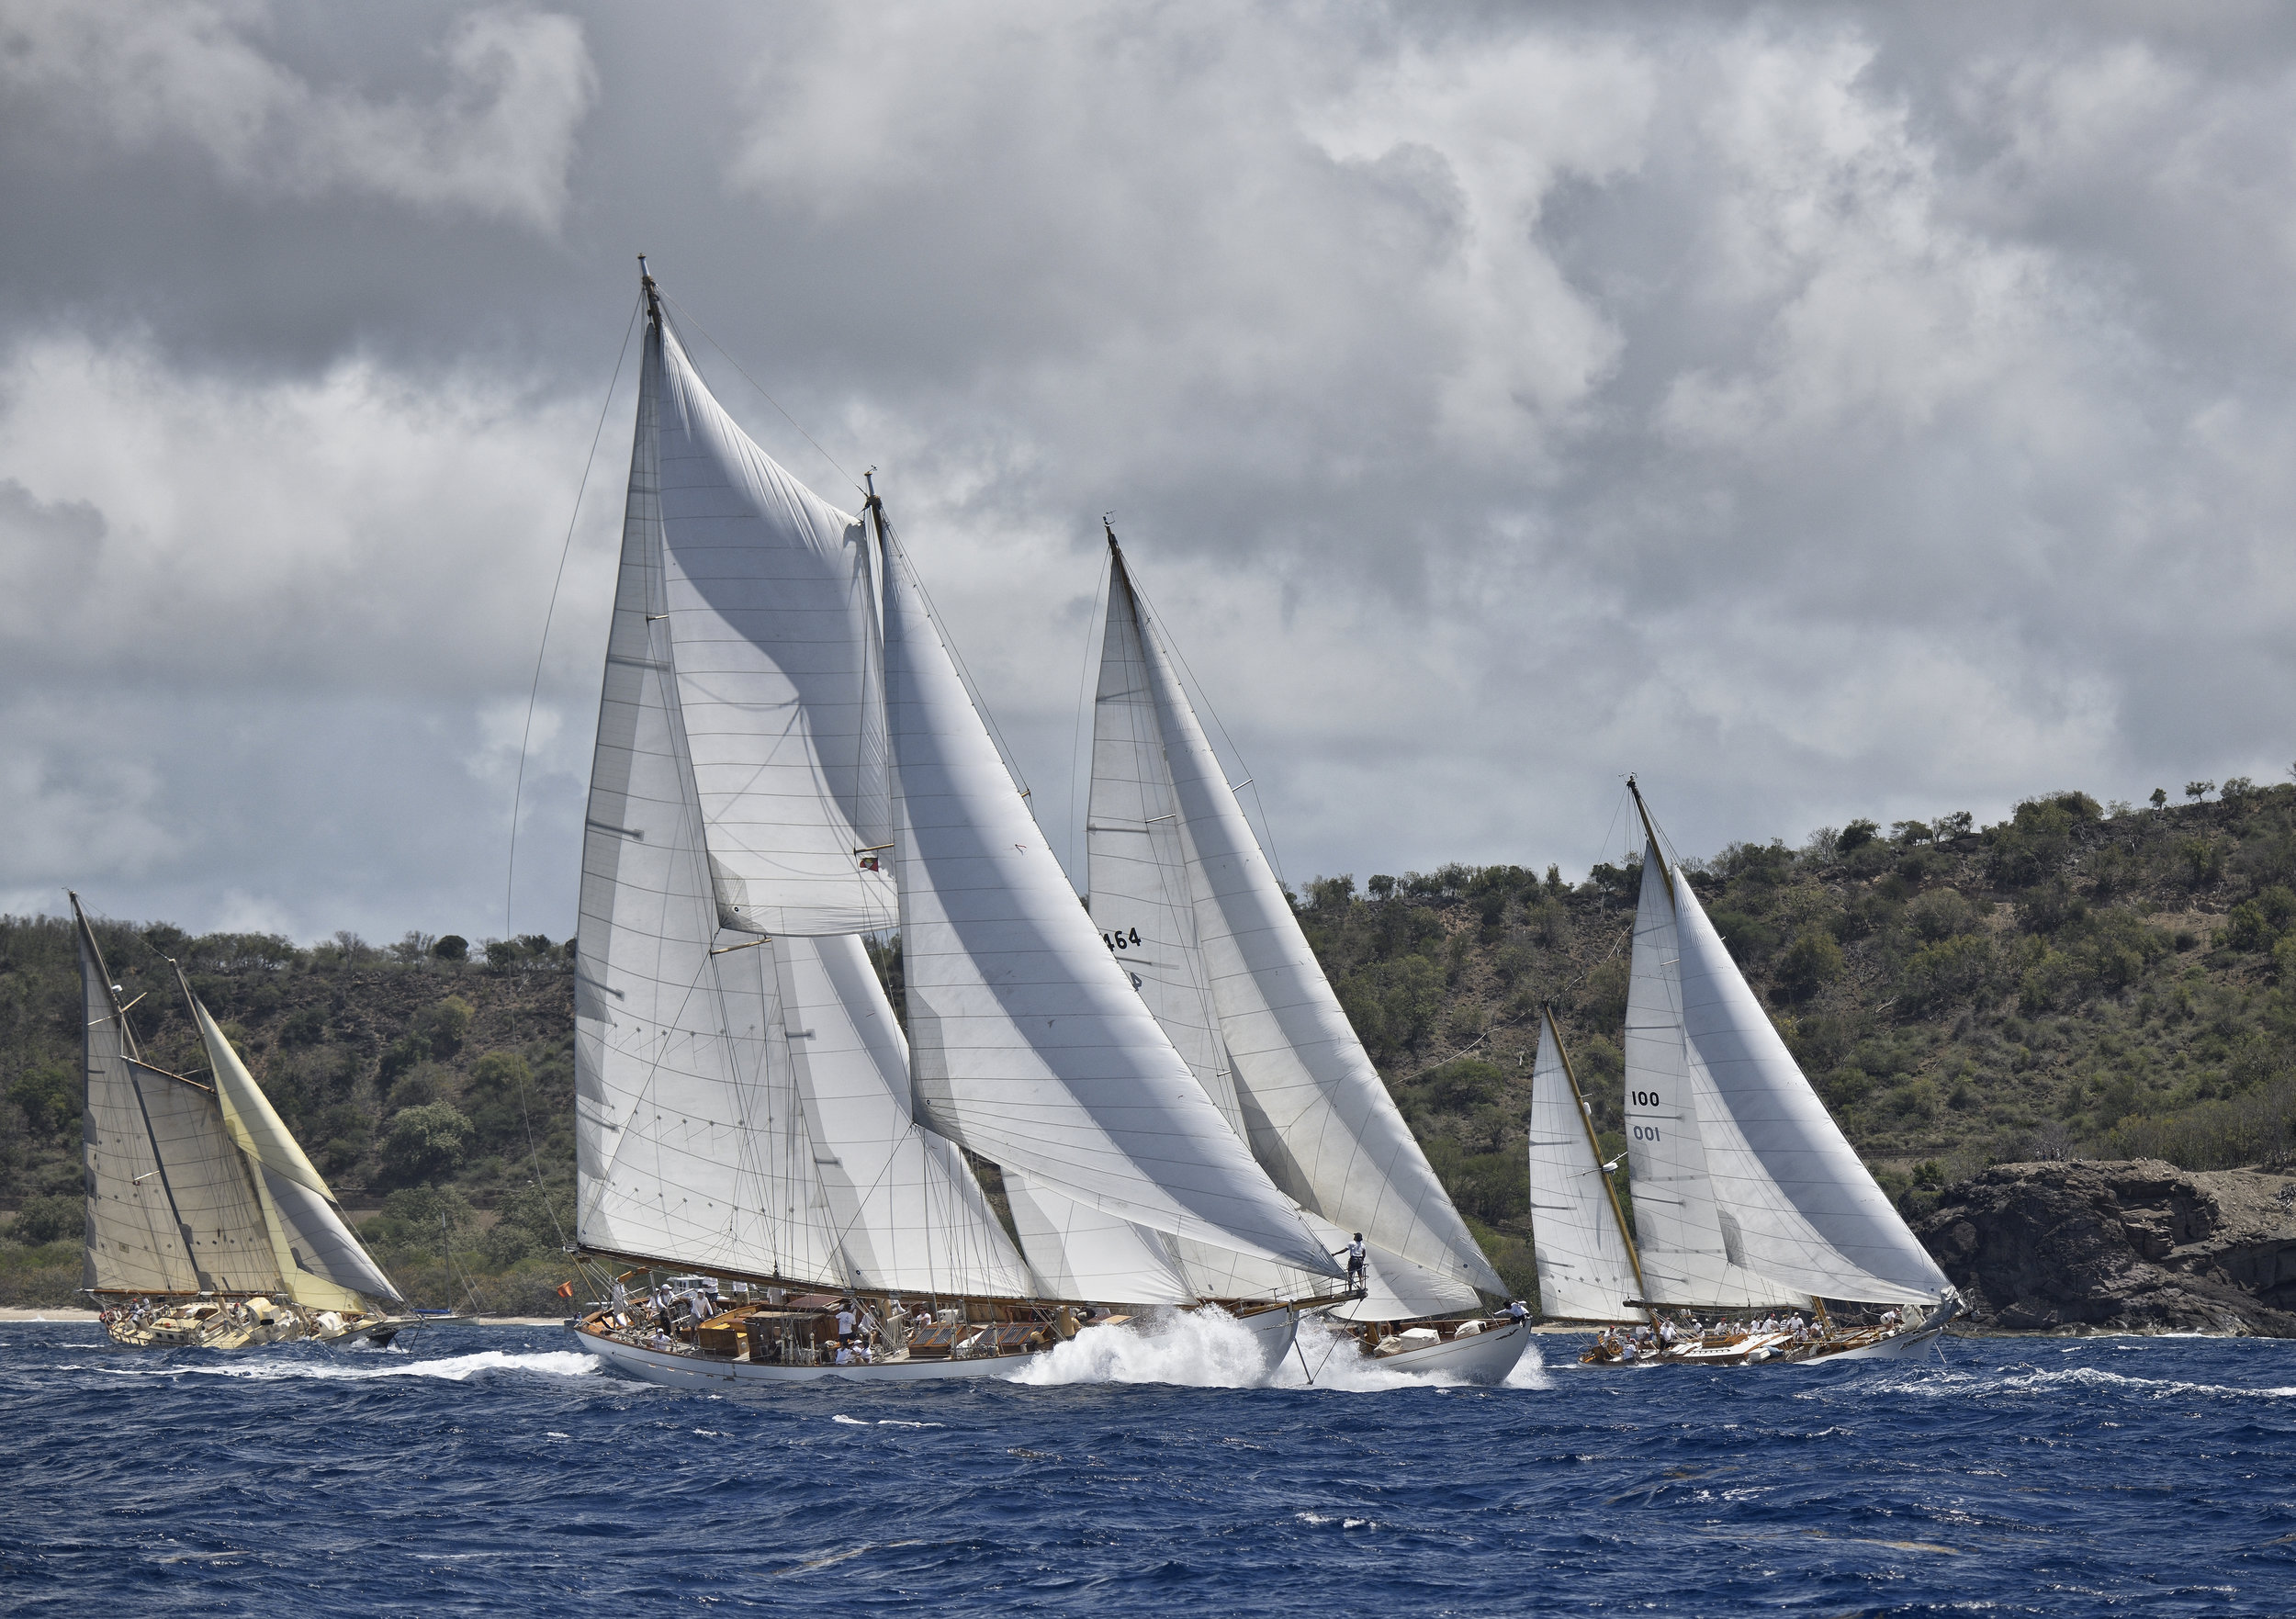 Long lens shot of the Antigua Classic Yacht Regatta, April 2018. In foreground is schooner  Eros  with bowman Wilson Willkom, aside is  Mariella  and  Ticonderoga  coming on strong.